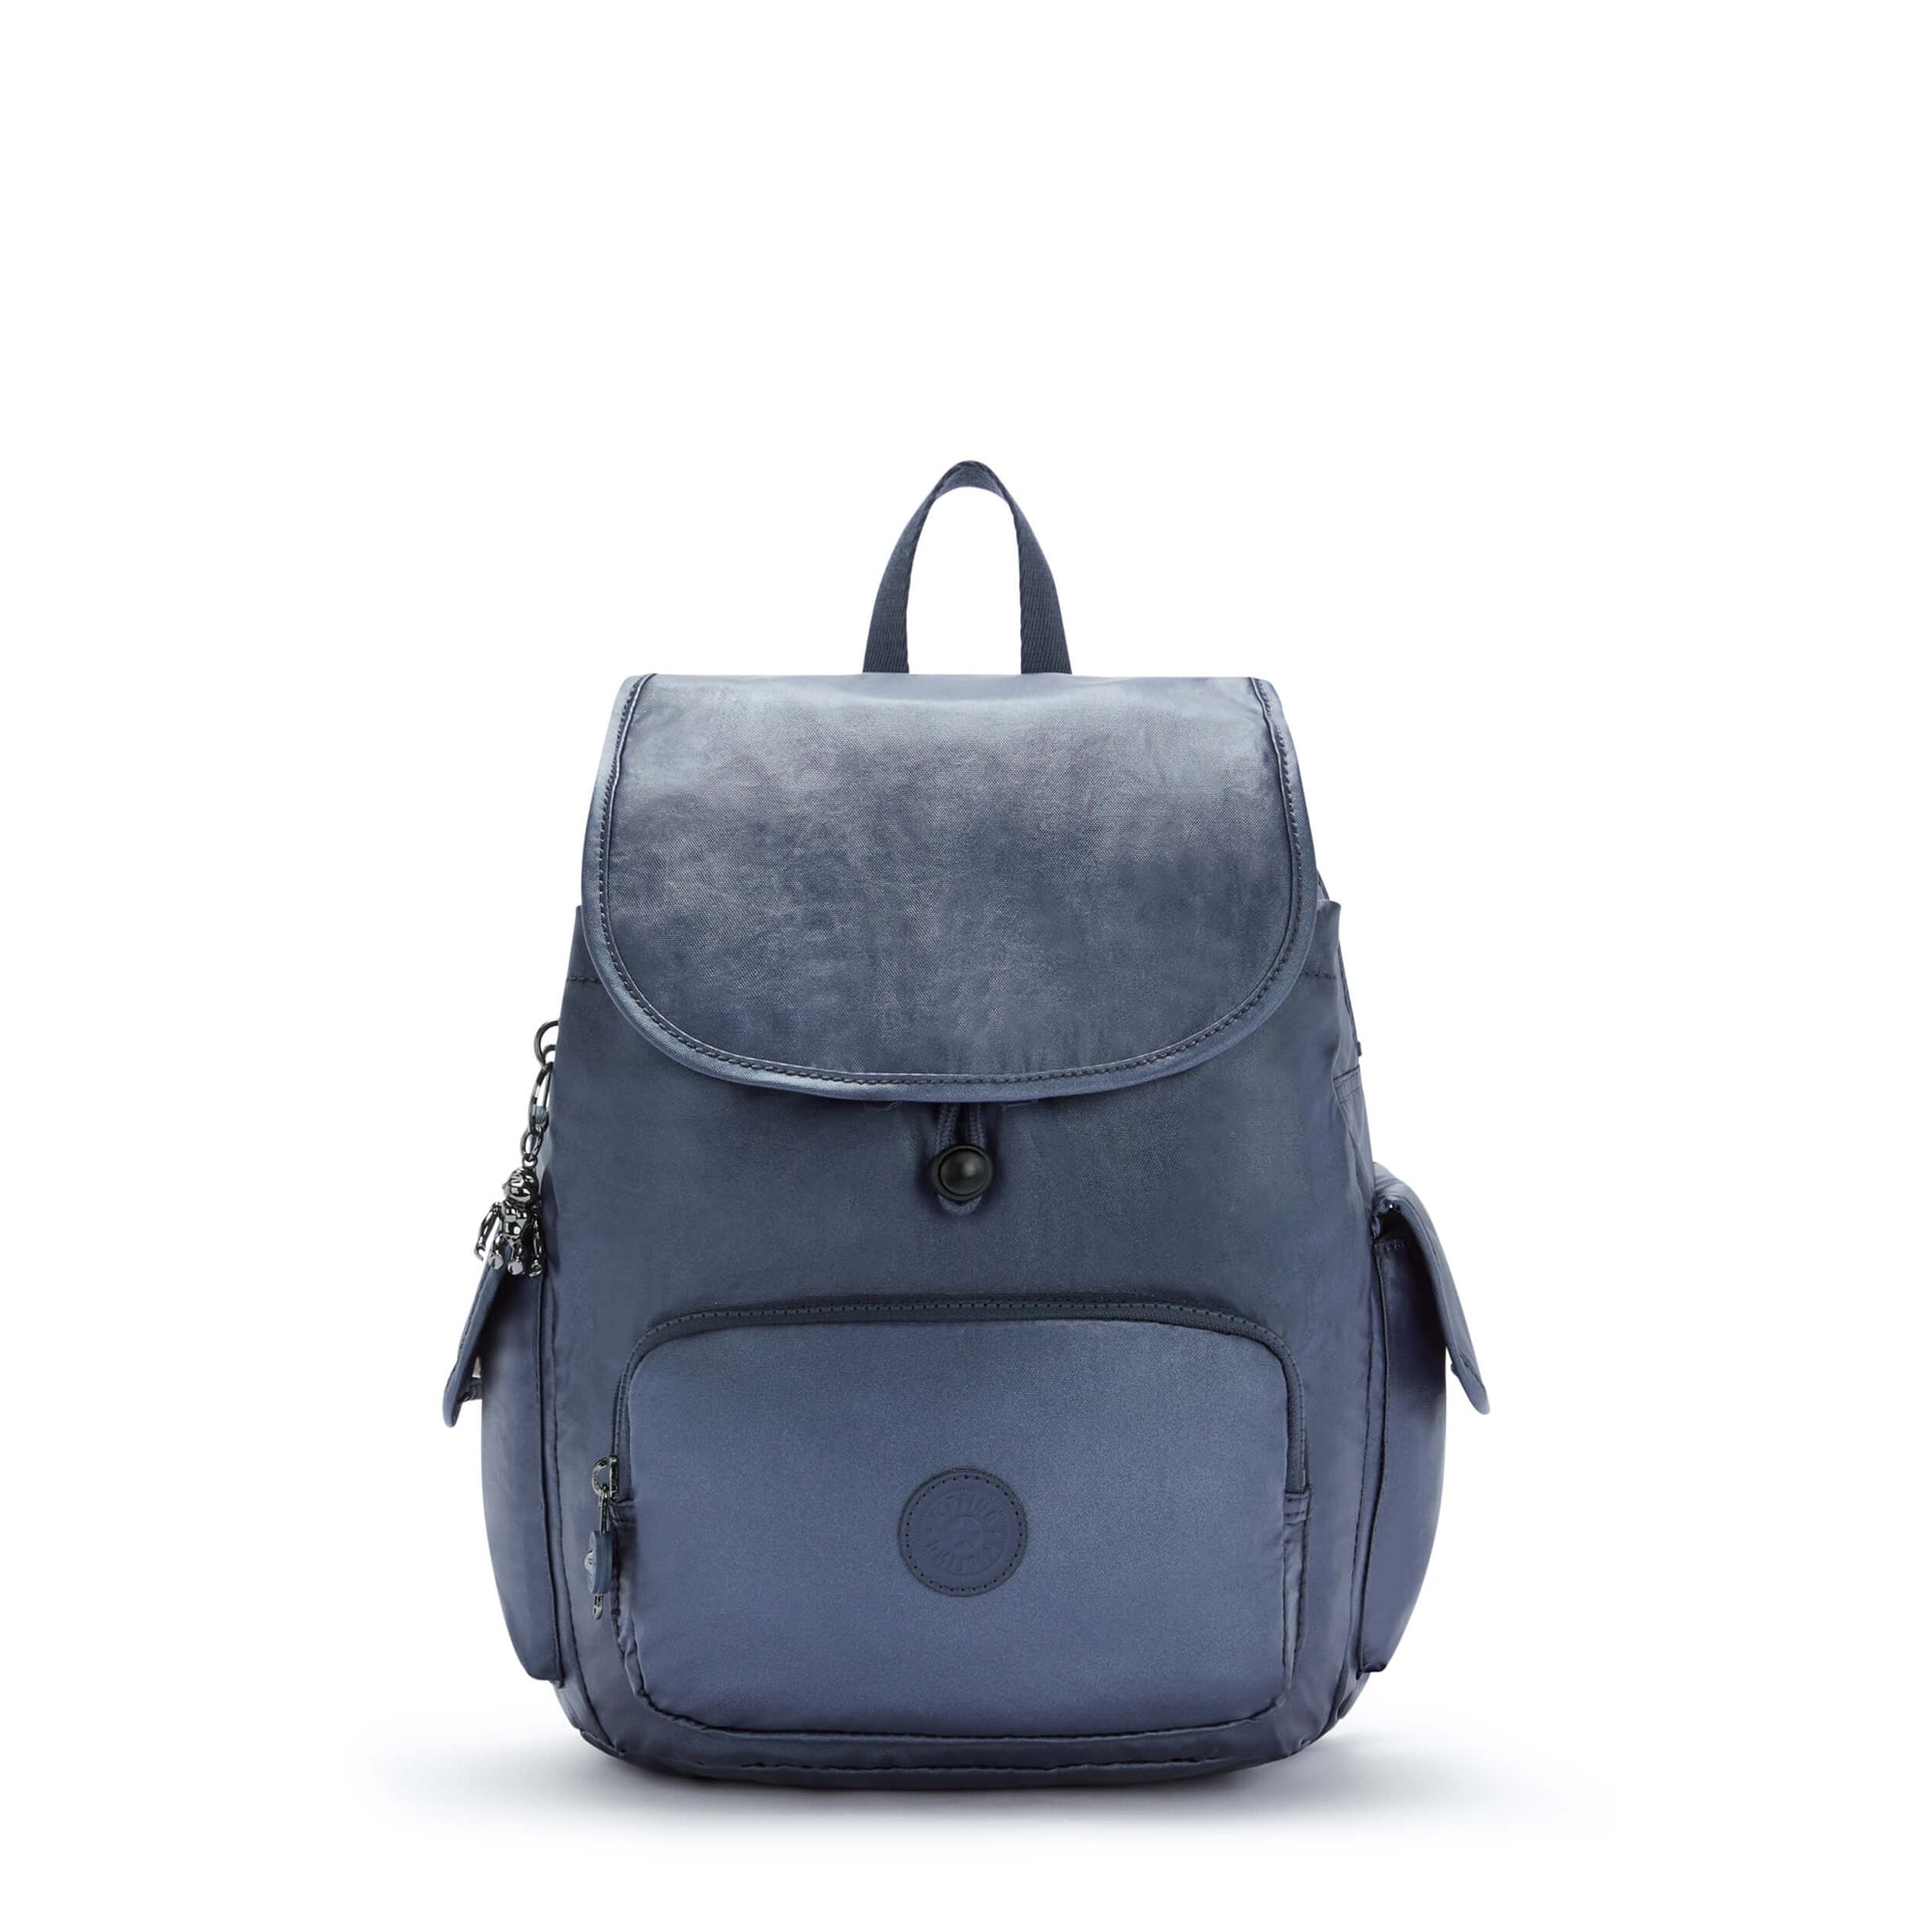 Backpack Kipling City Pack S Midnight Frost K15641Y98